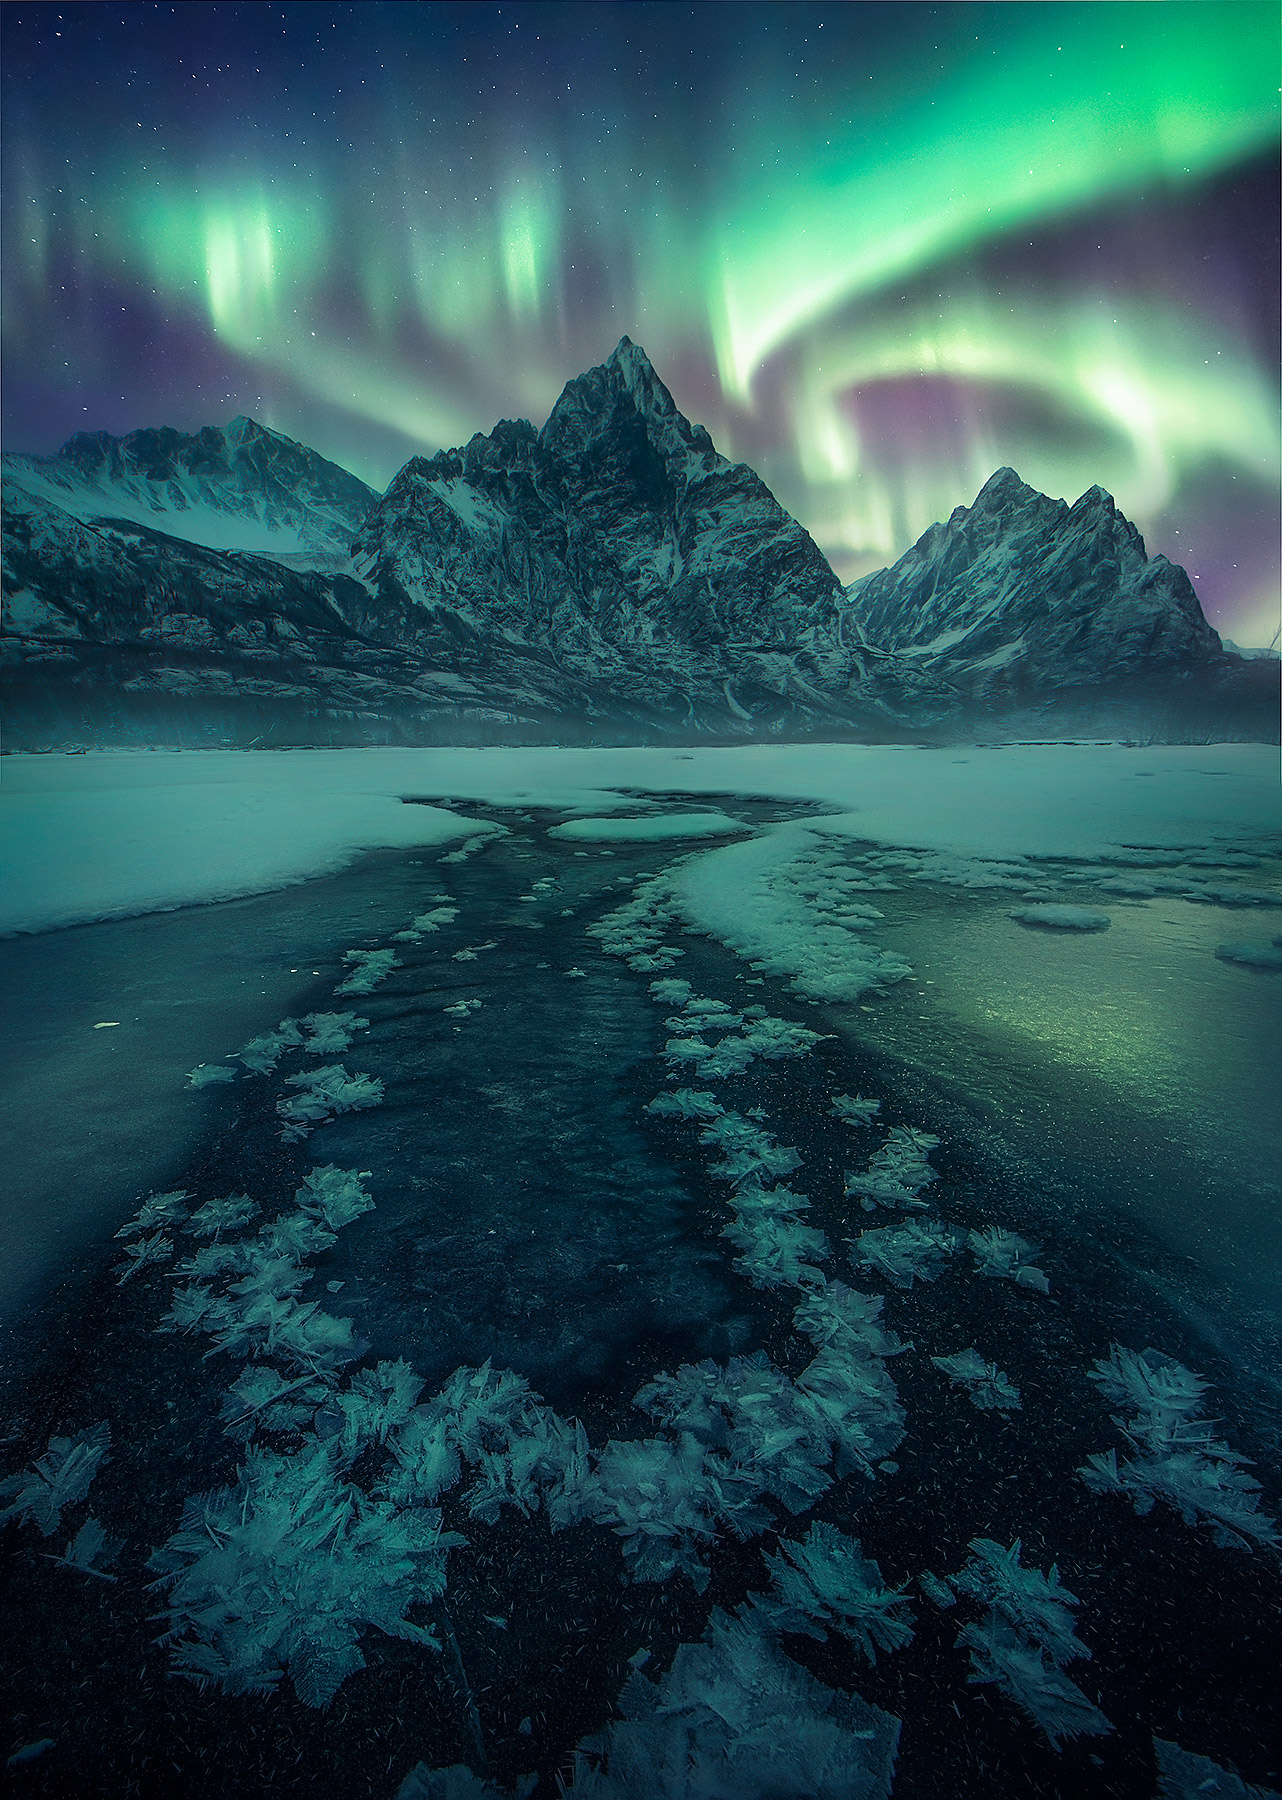 The aurora shown here dancing above Chugach peaks in mid-winter.  Hoar frost adorns the frozen river below.